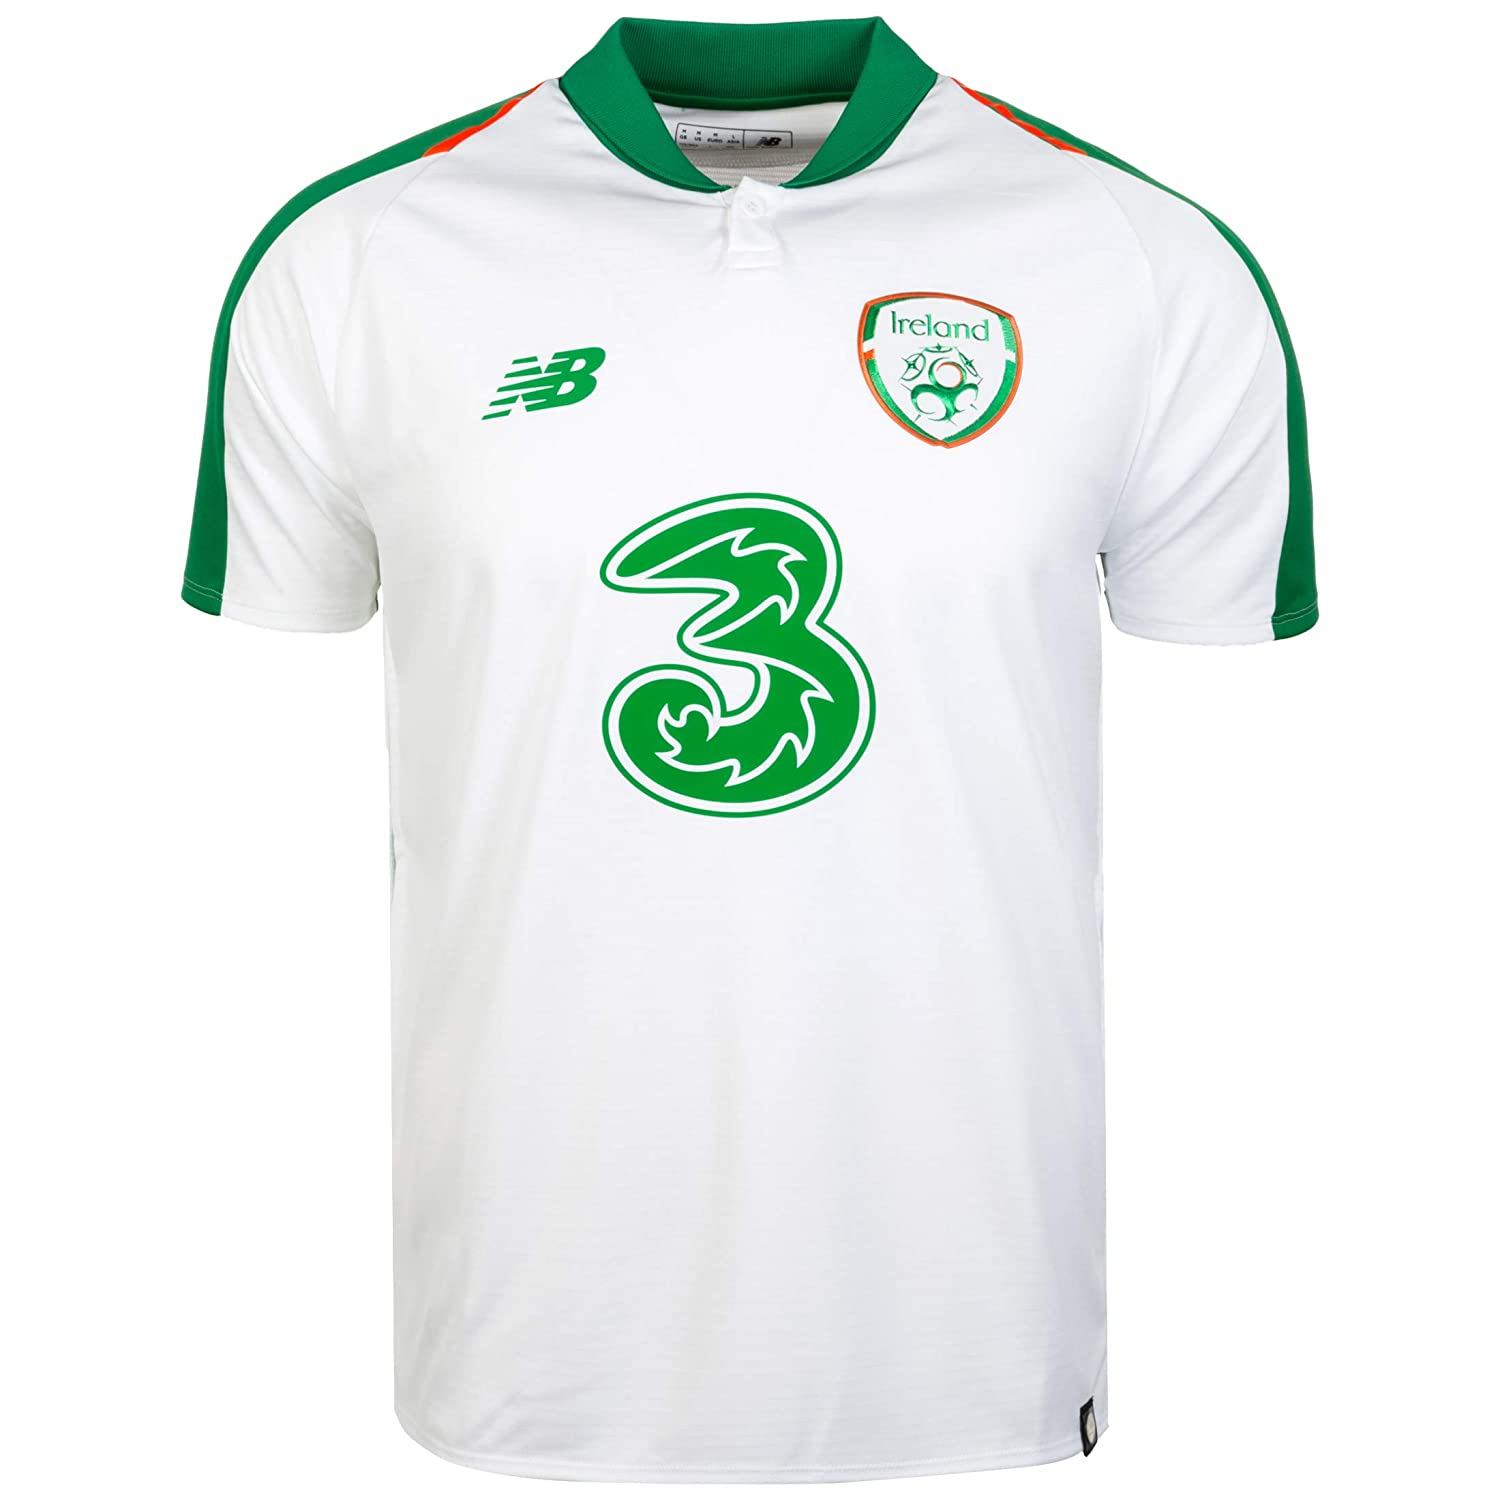 【30%OFF】 2018-2019 Ireland New Balance XXXXL Balance Away Ireland Shirt B07GBK3H3M XXXXL Adults|White White XXXXL Adults, 癒す堂:4a8bfc6b --- svecha37.ru